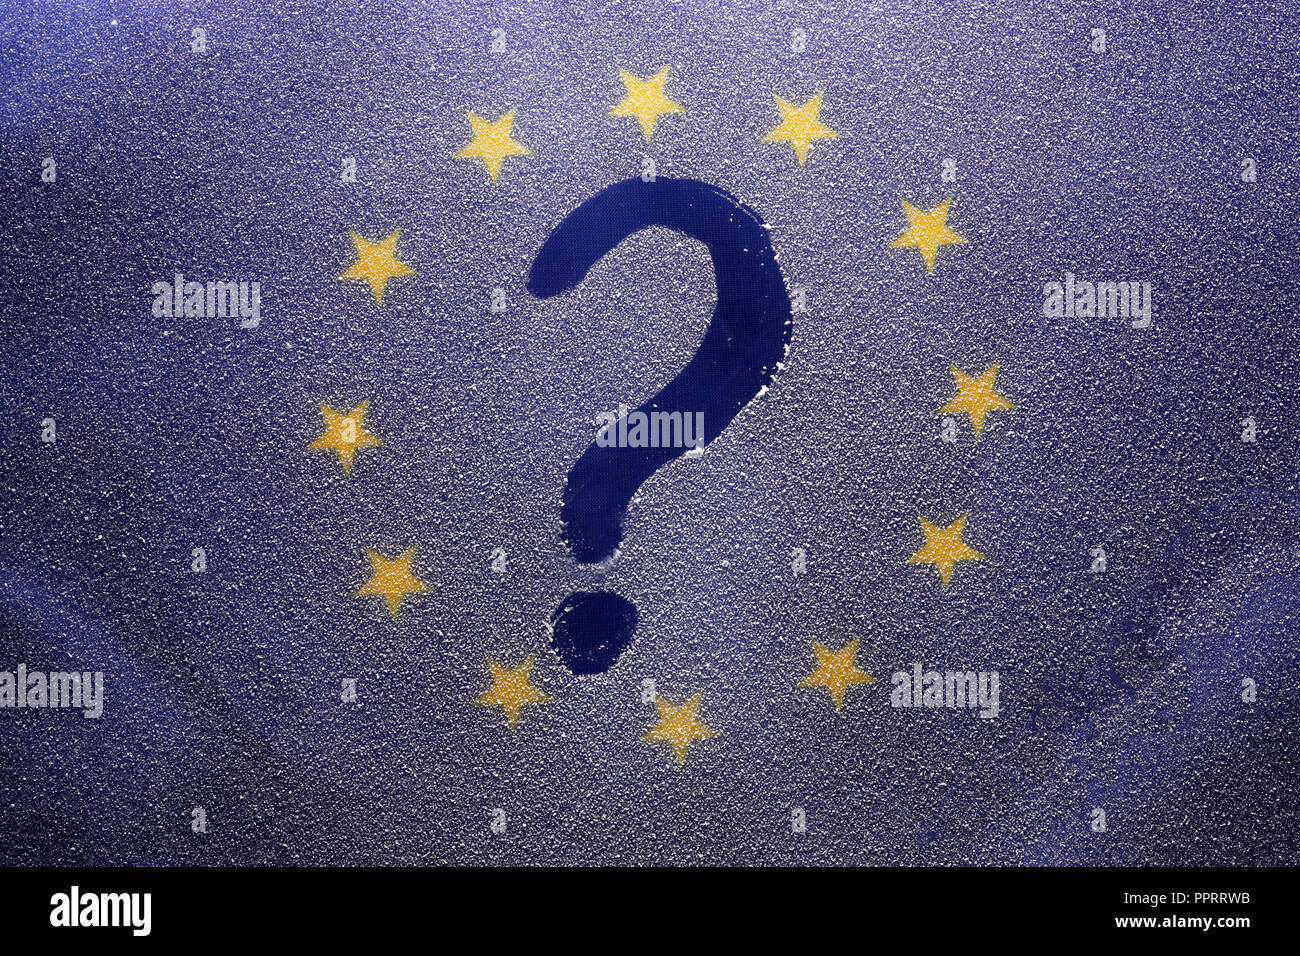 The flag of the European Union is buried in a snowdrift. - Stock Image